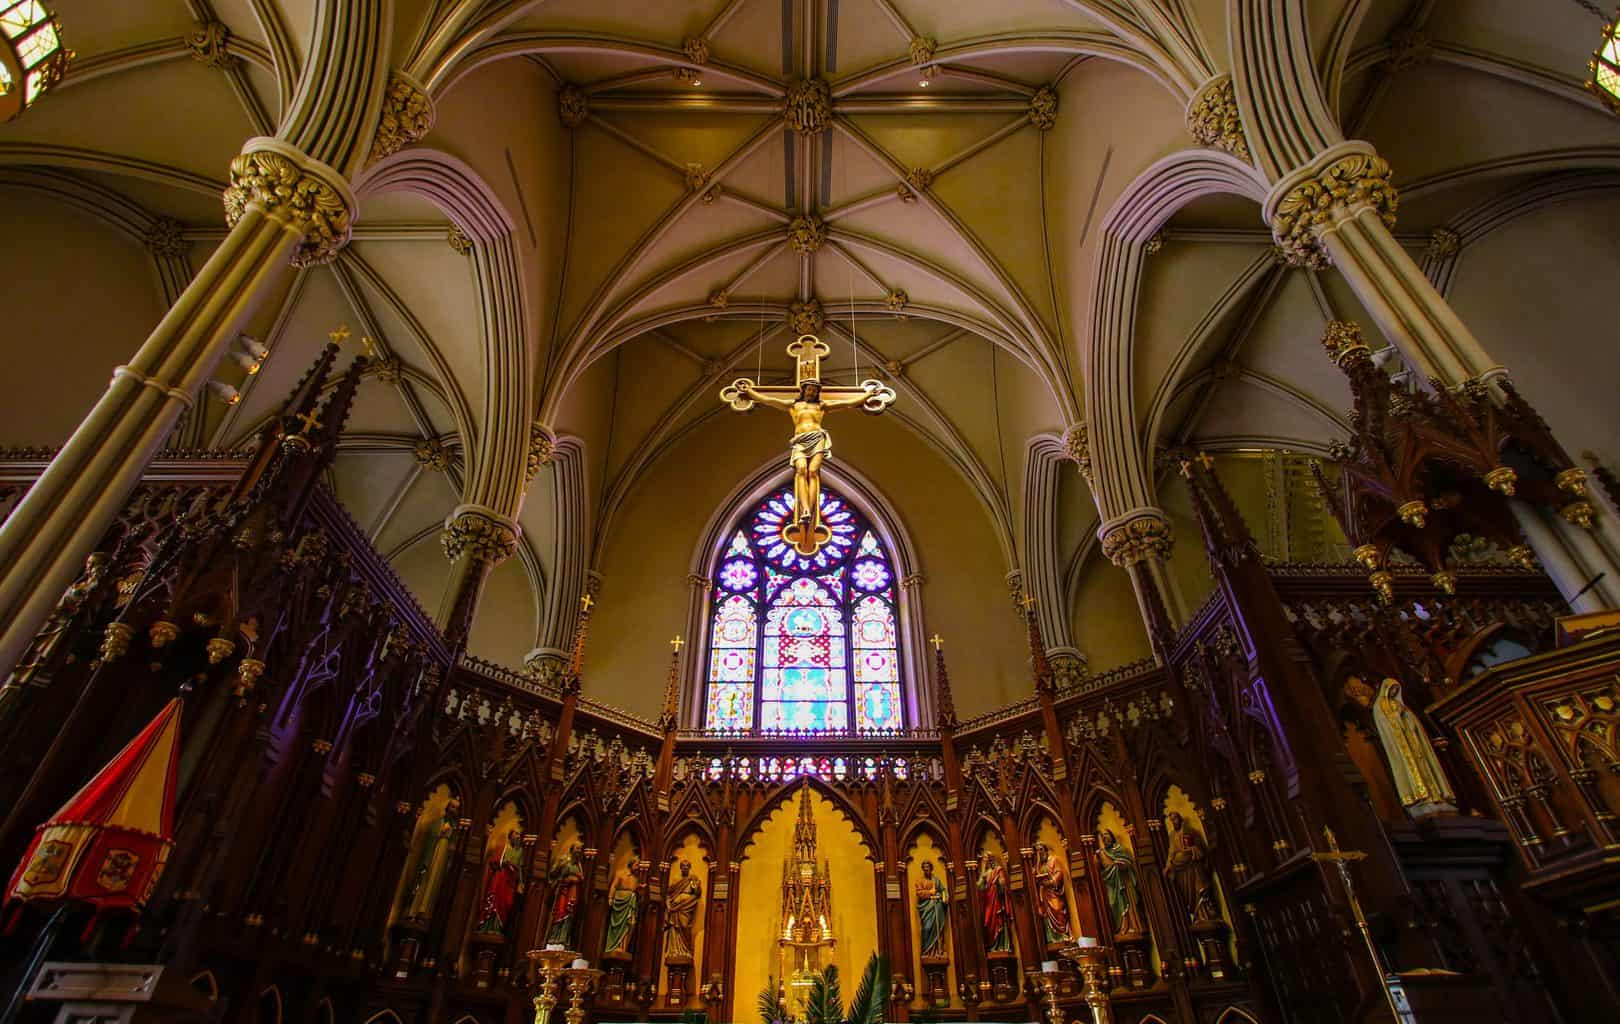 The magnificent interior of Old St.Patrick's Cathedral.